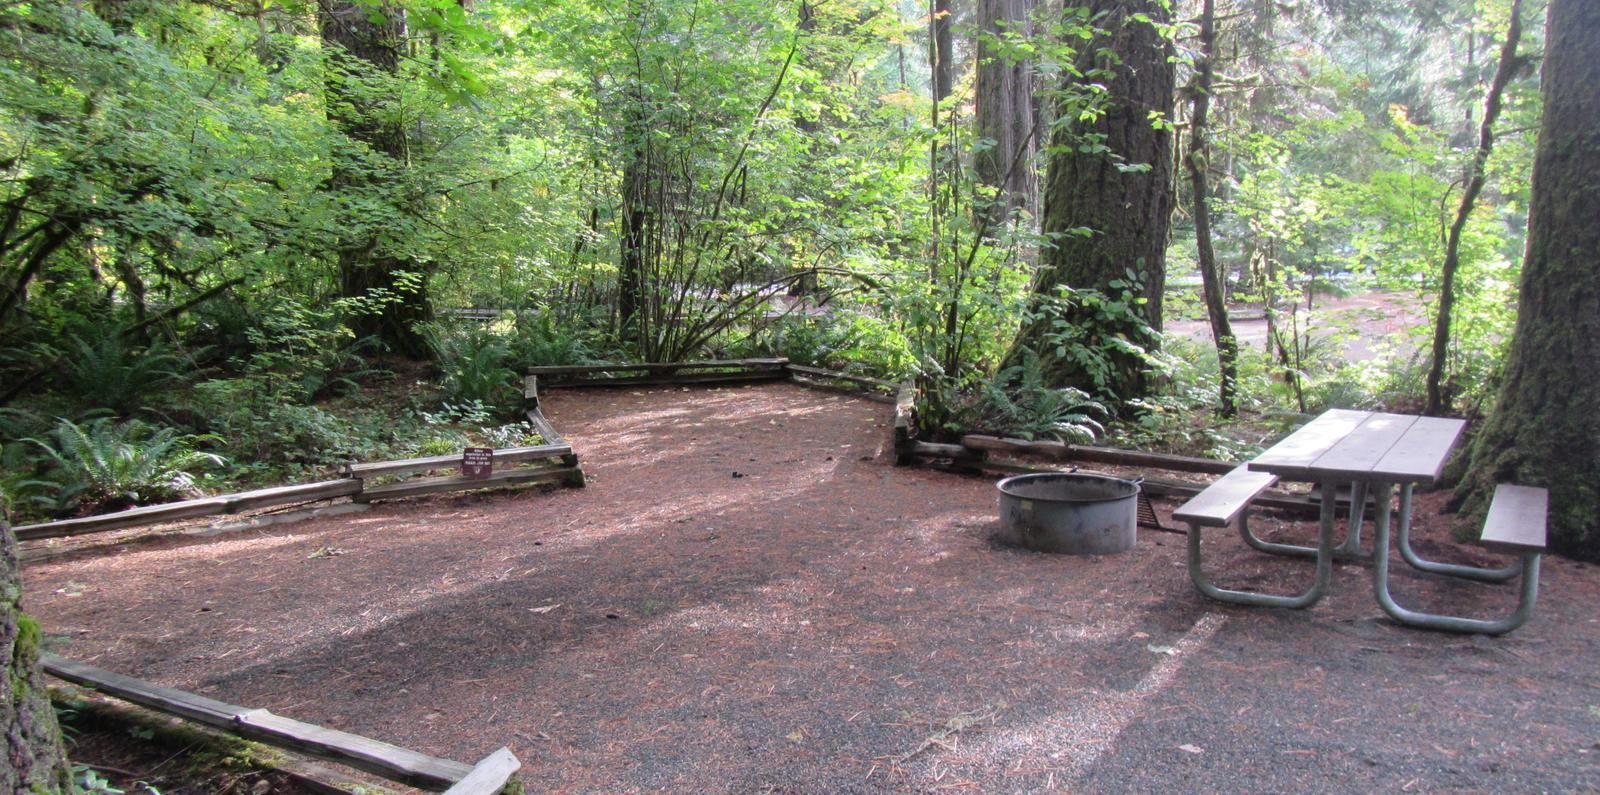 Site includes tent camping area, with picnic table and fire ring